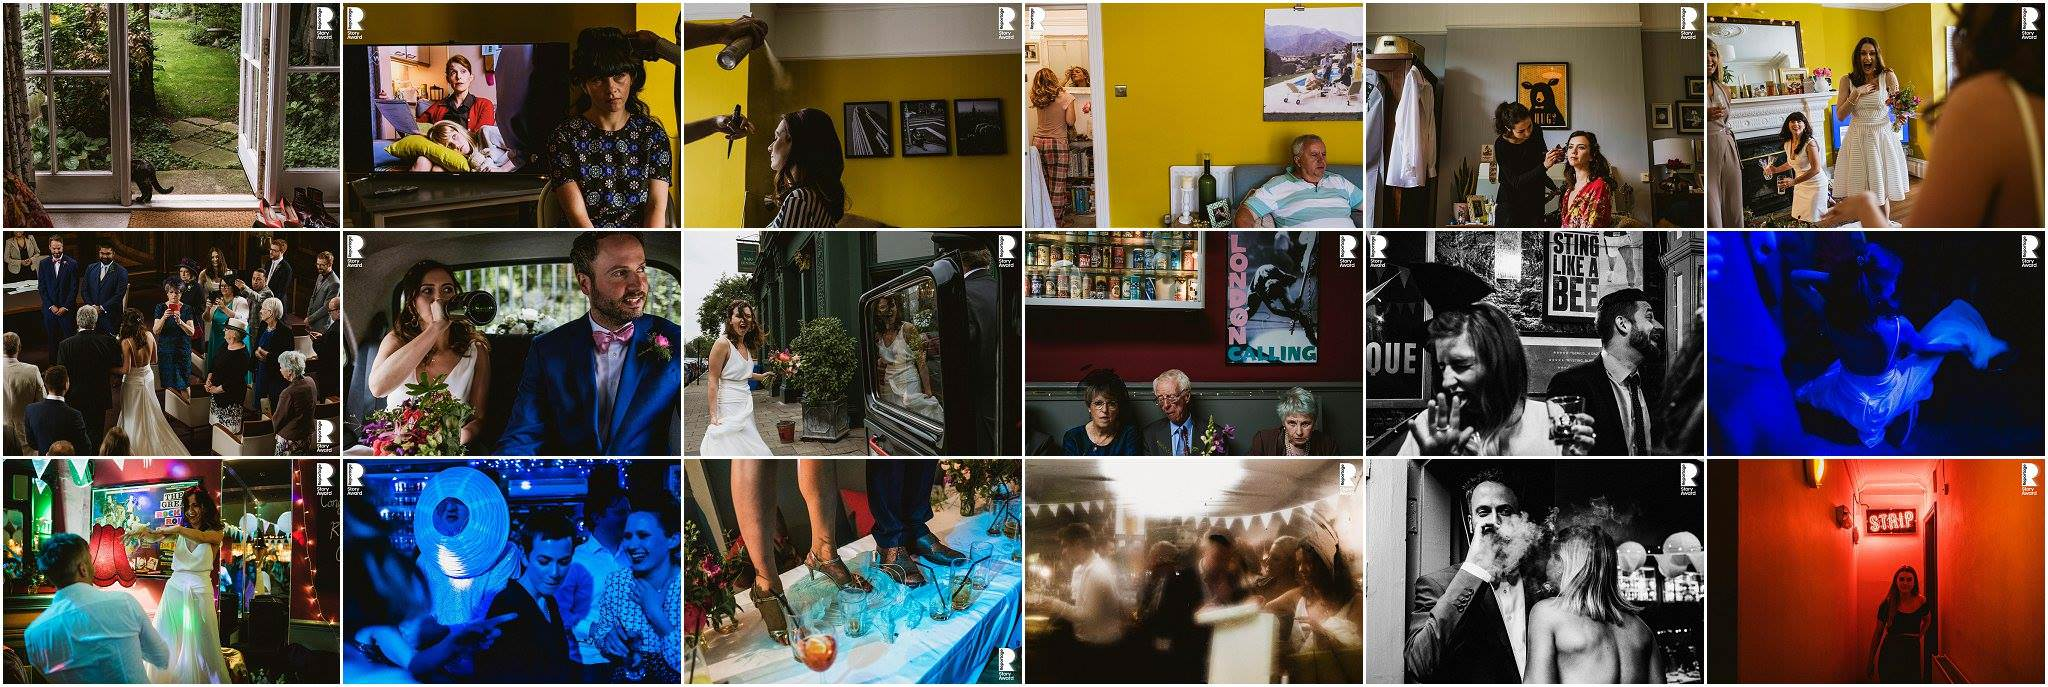 Award winning documentary wedding photography by UK photographers Liam & Dom Shaw. Collage of award winning images - This Is Reportage International Awards